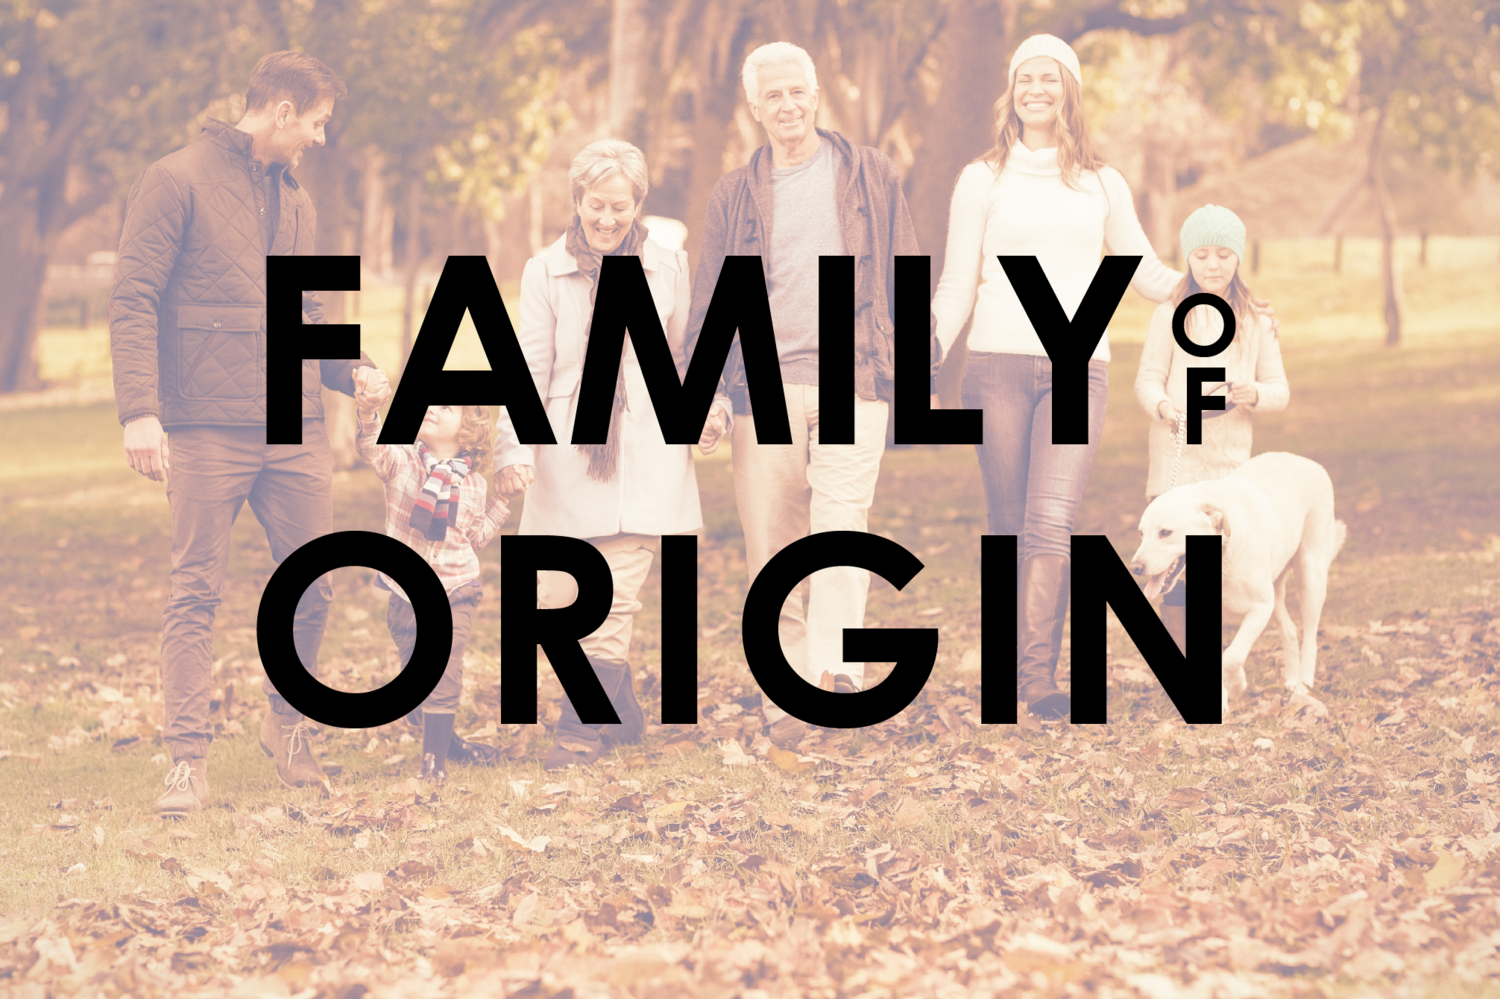 Family Of Origin Faith Based Great Marriages Family origin is the country from which the birth family came. great marriages